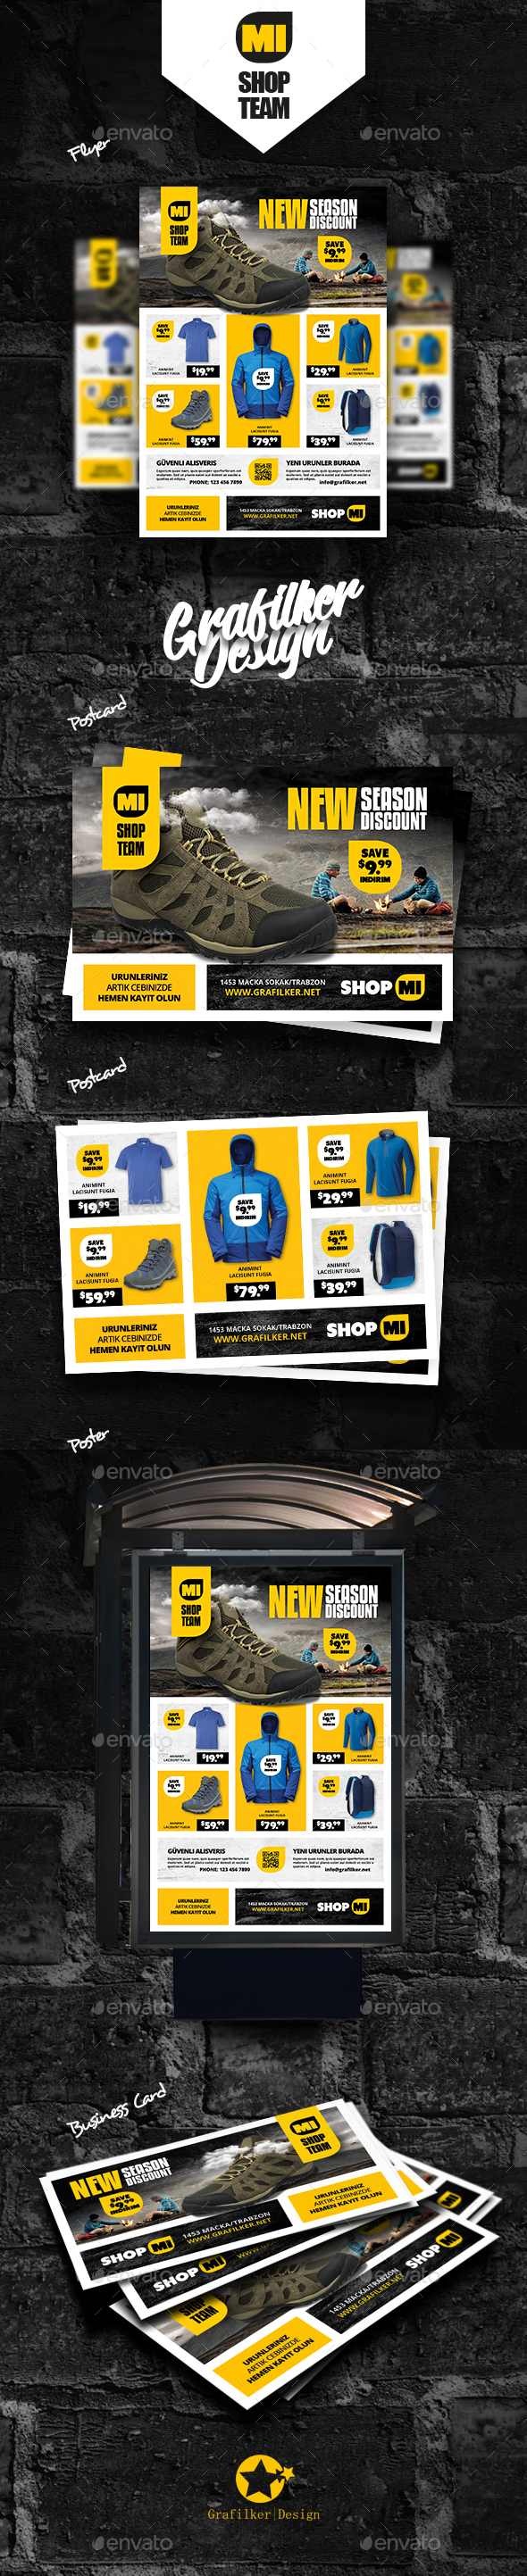 Shopping Bundle Templates - Corporate Flyers